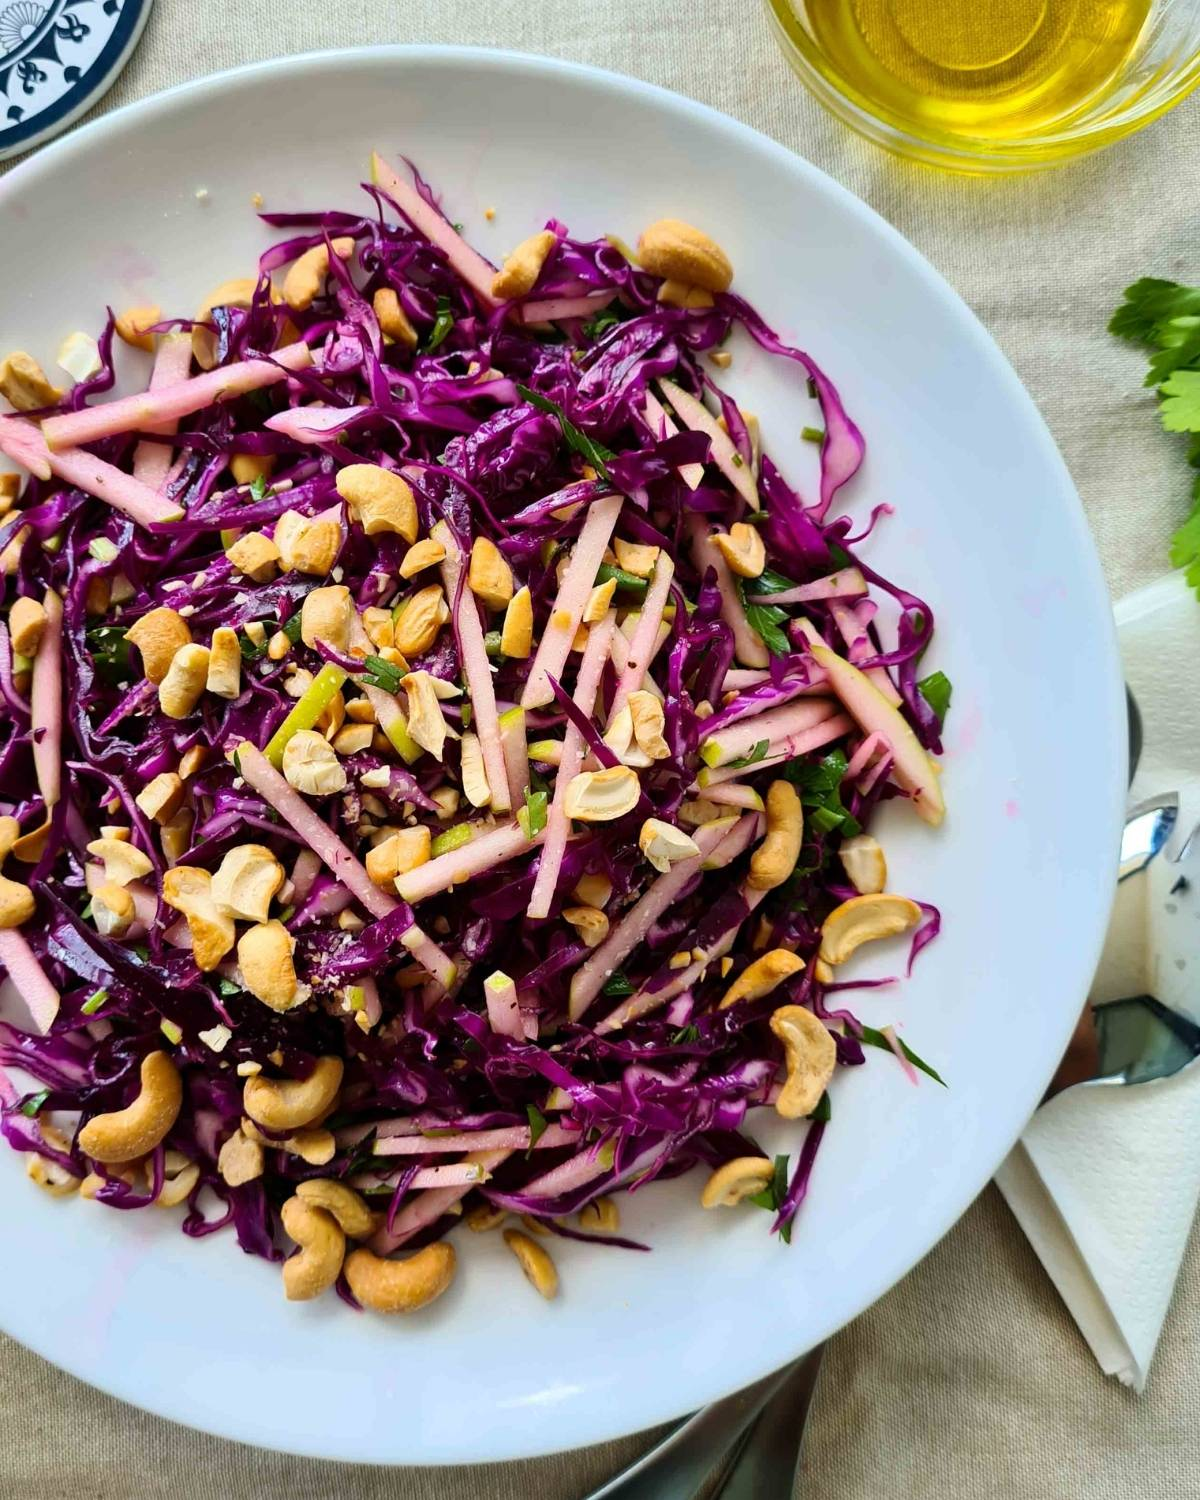 A large plate of this salad with lots of cashew nuts